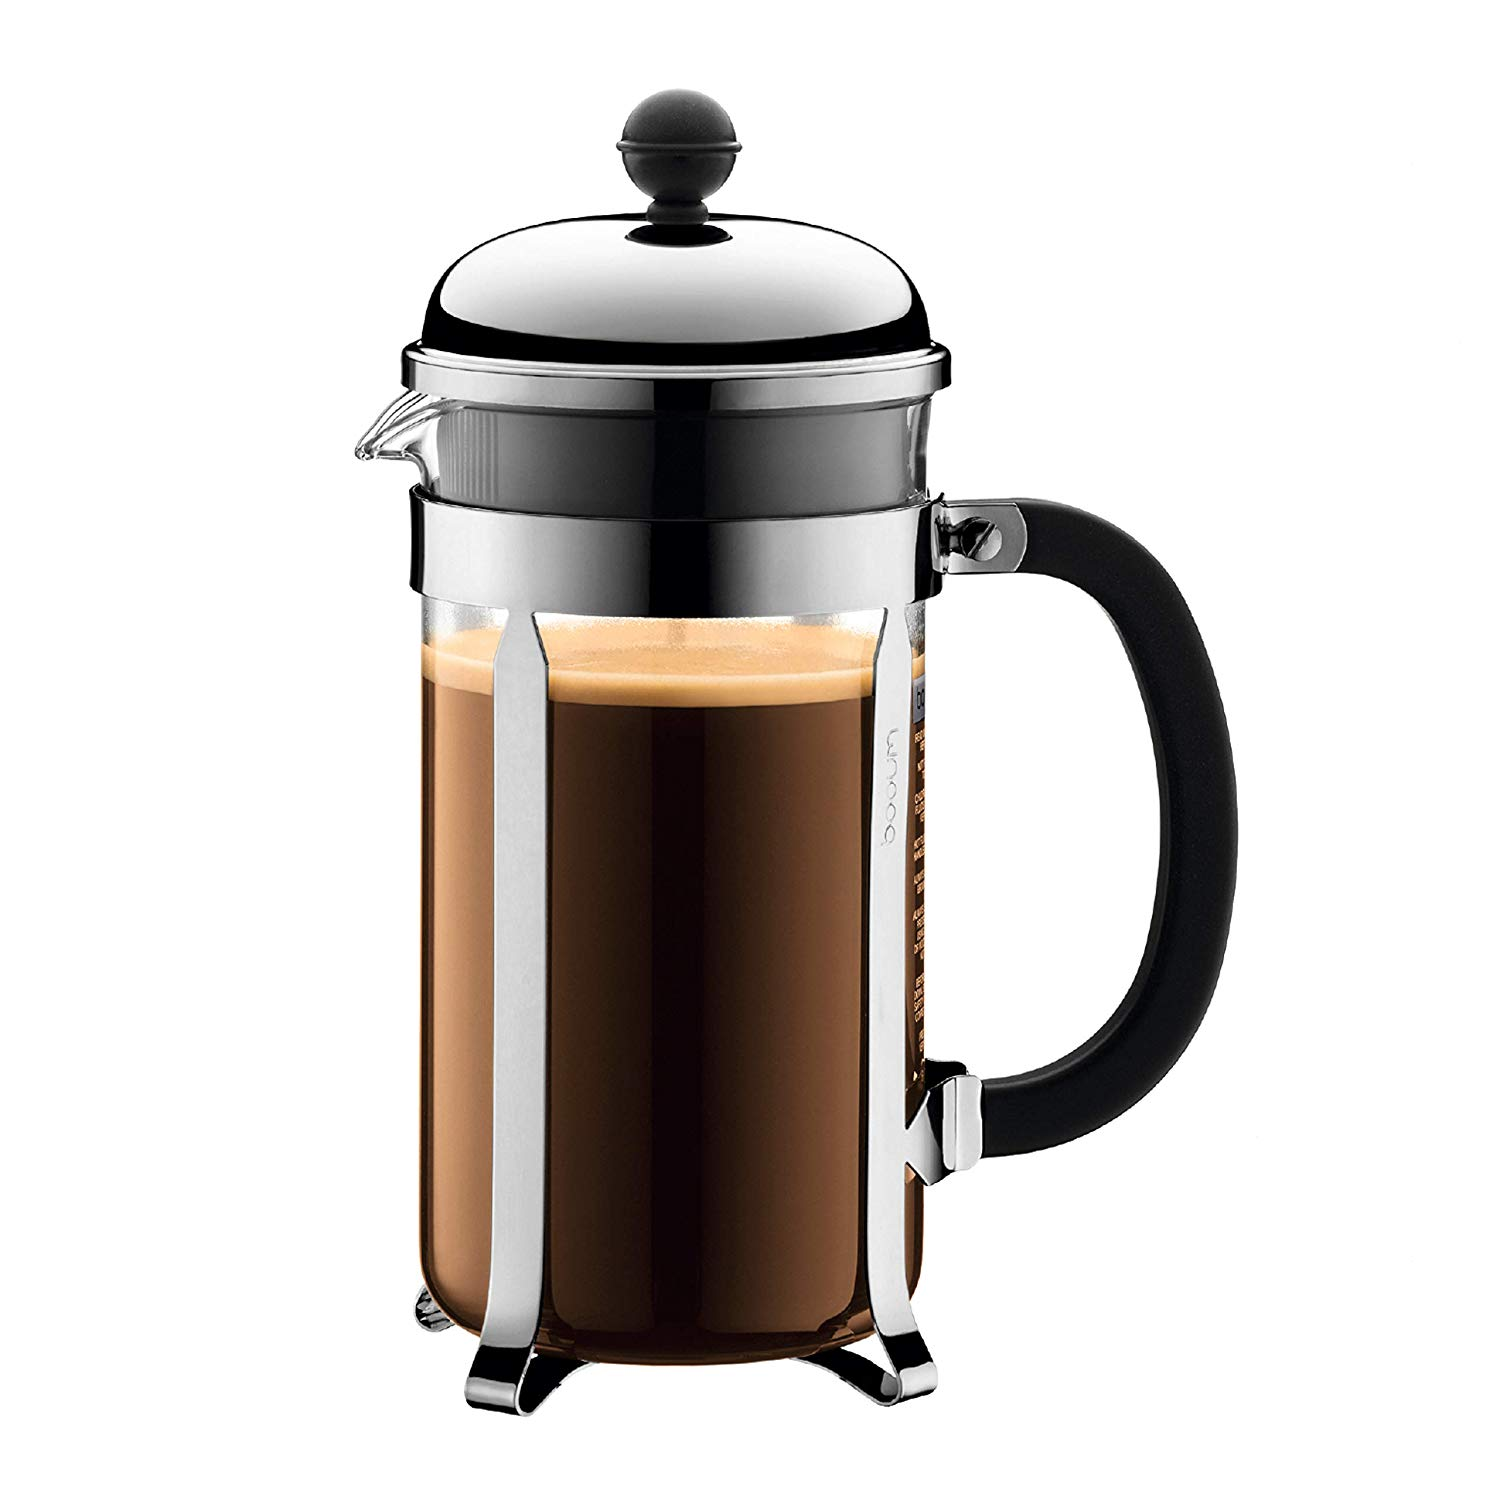 Best French press: Bodum